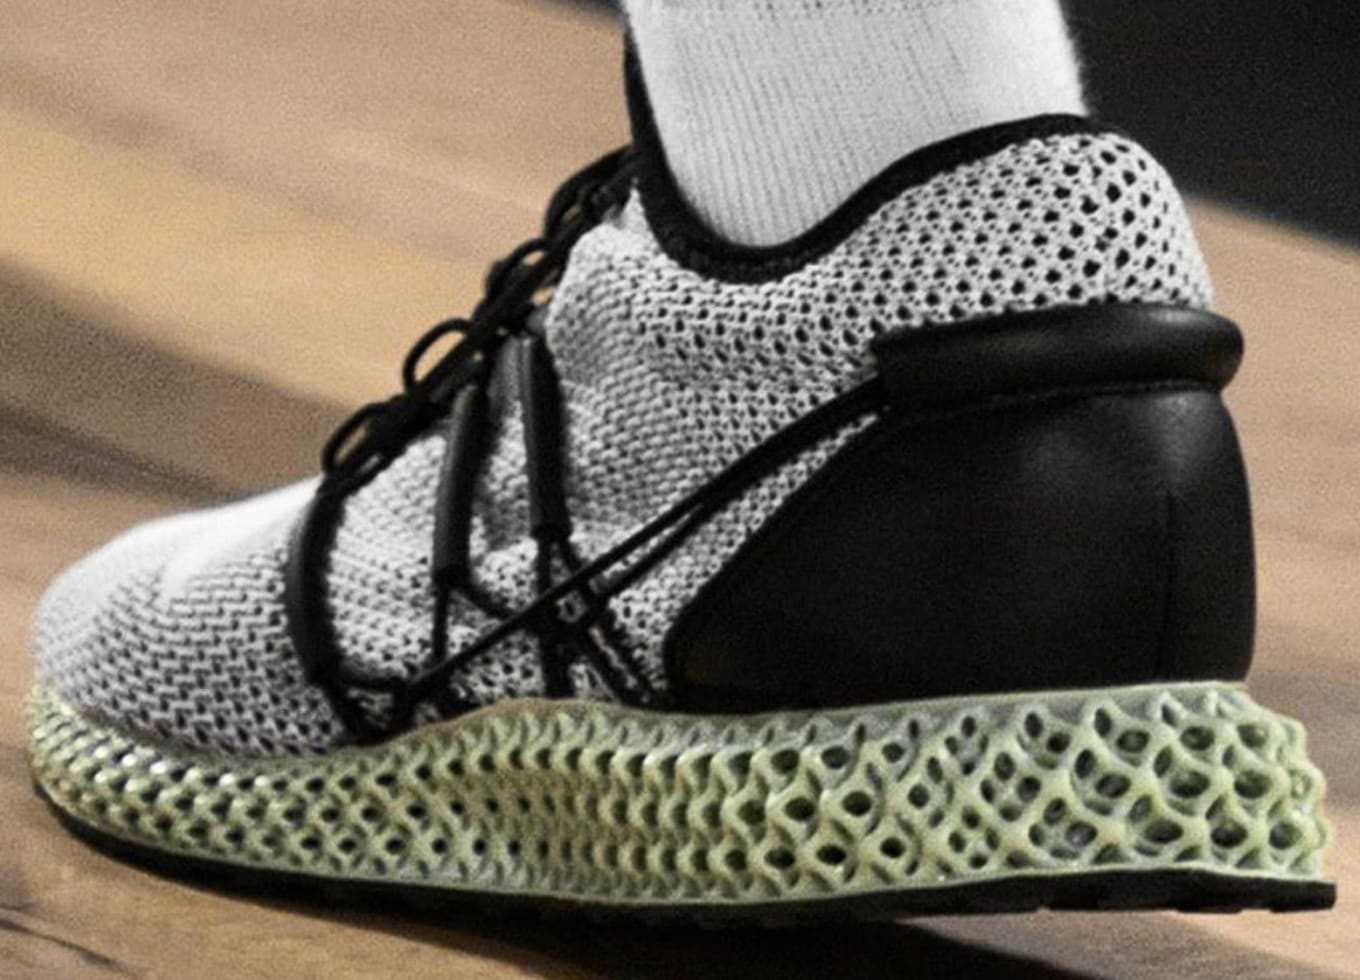 2e39de84002d Adidas Brings Futurecraft 4D Printed Soles to Stylish Y3 Sneakers ...